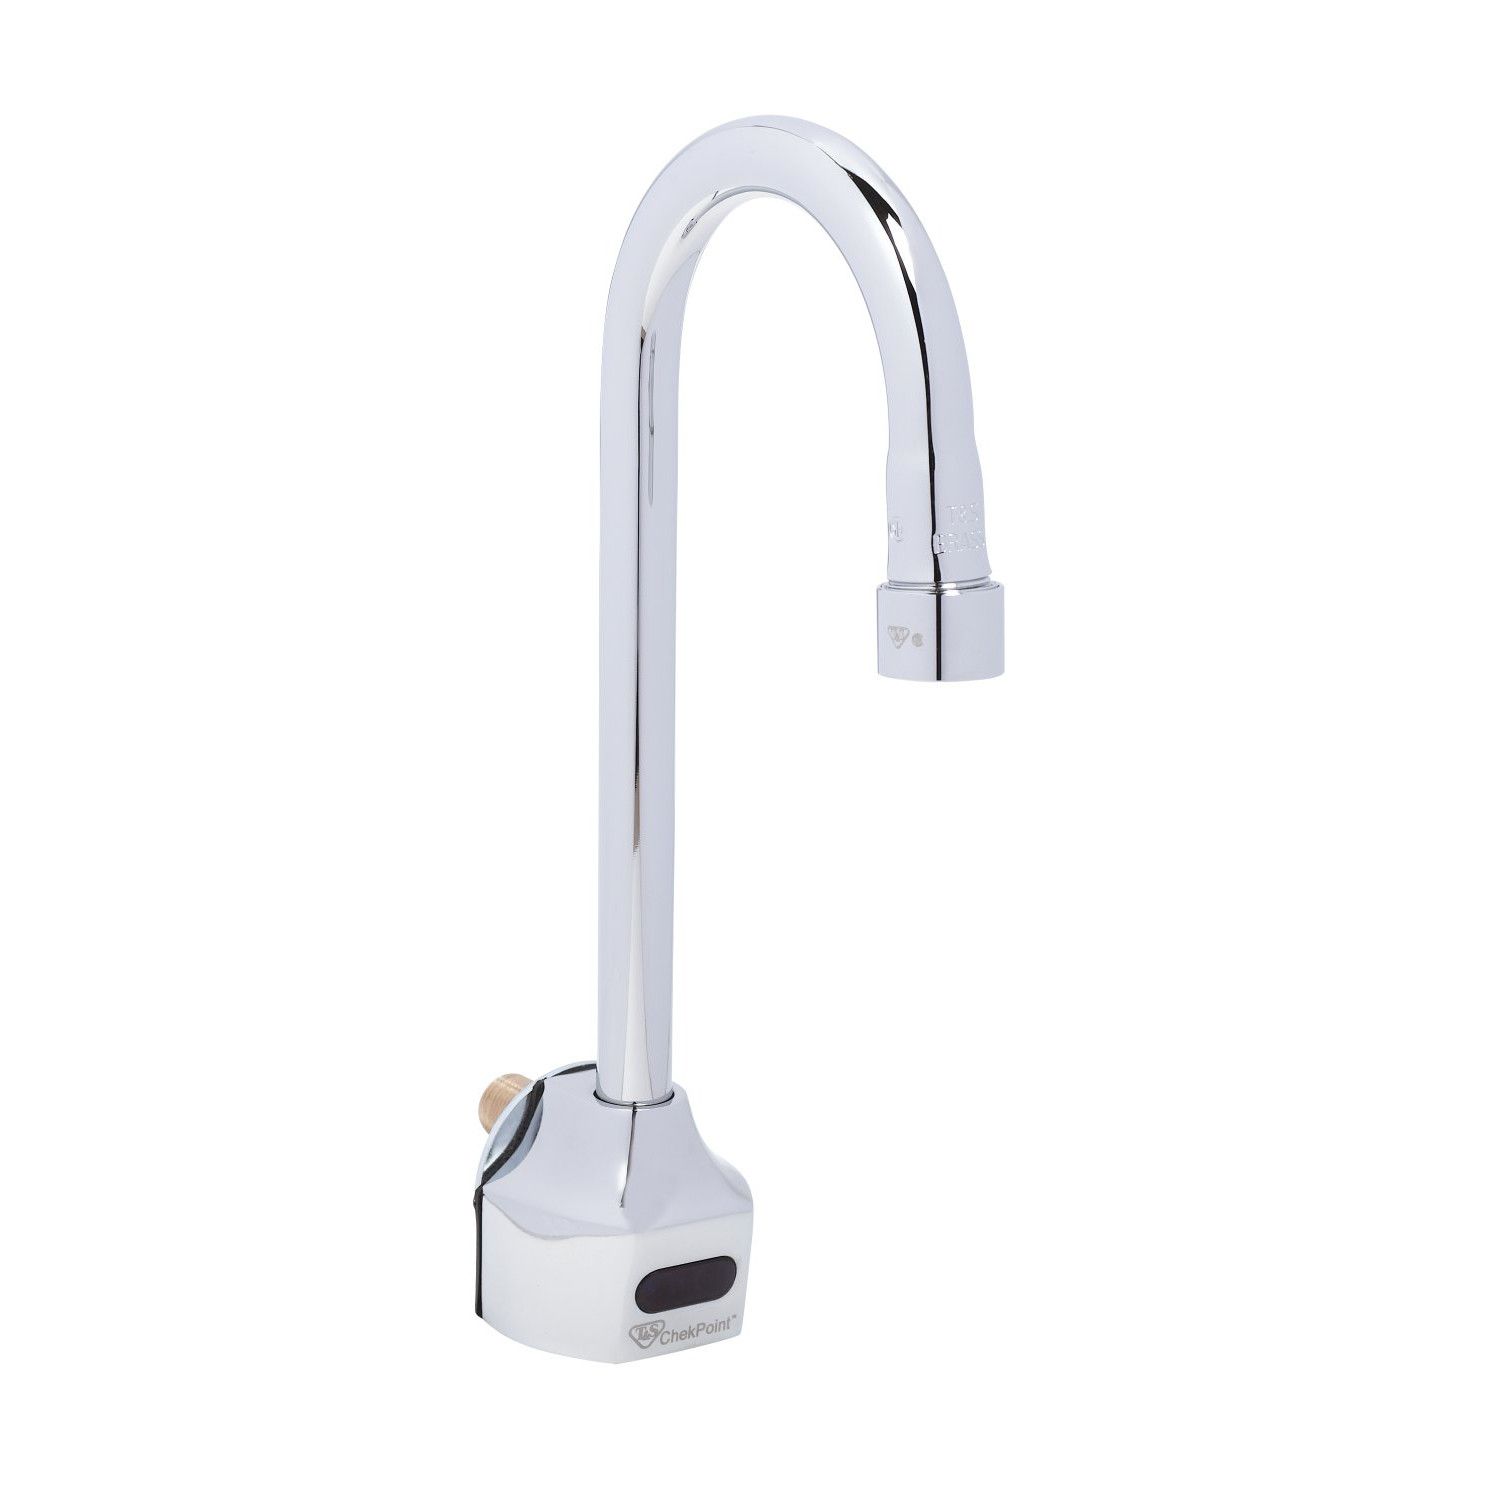 T S Ec Tmv Thermostatic Mixing Valve For Chekpoint Faucets: ChekPoint: EC-3101